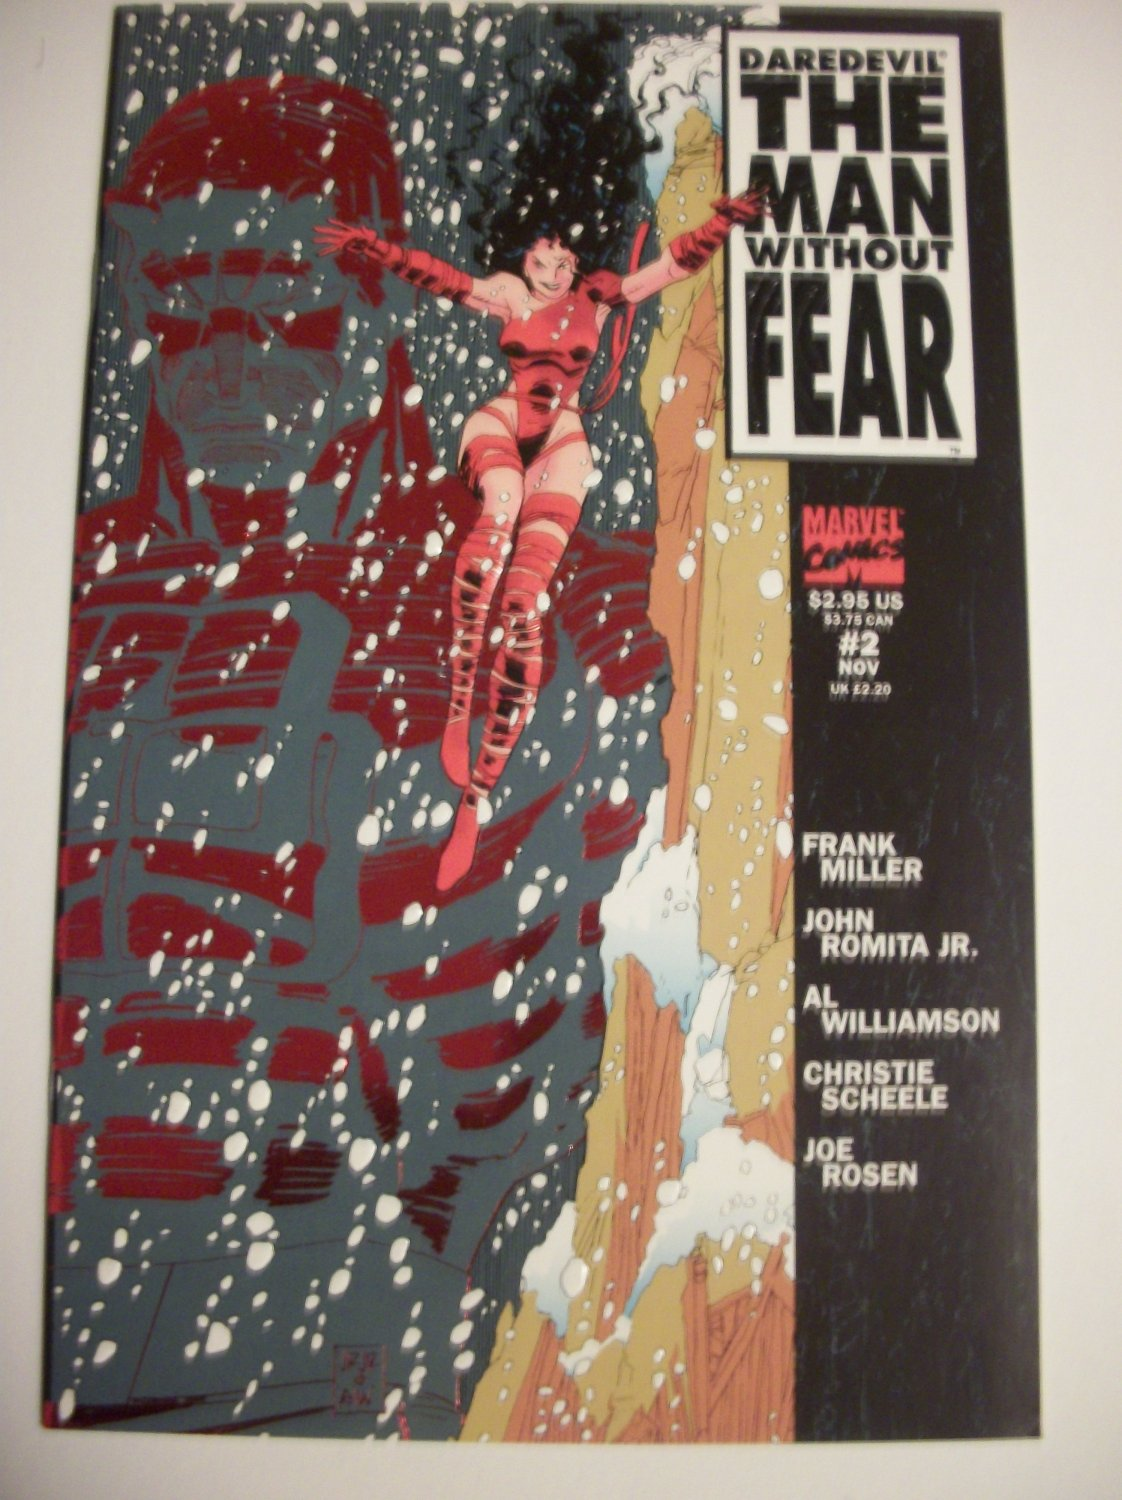 Daredevil The Man without Fear #2 by Frank Miller/John Romita Jr.